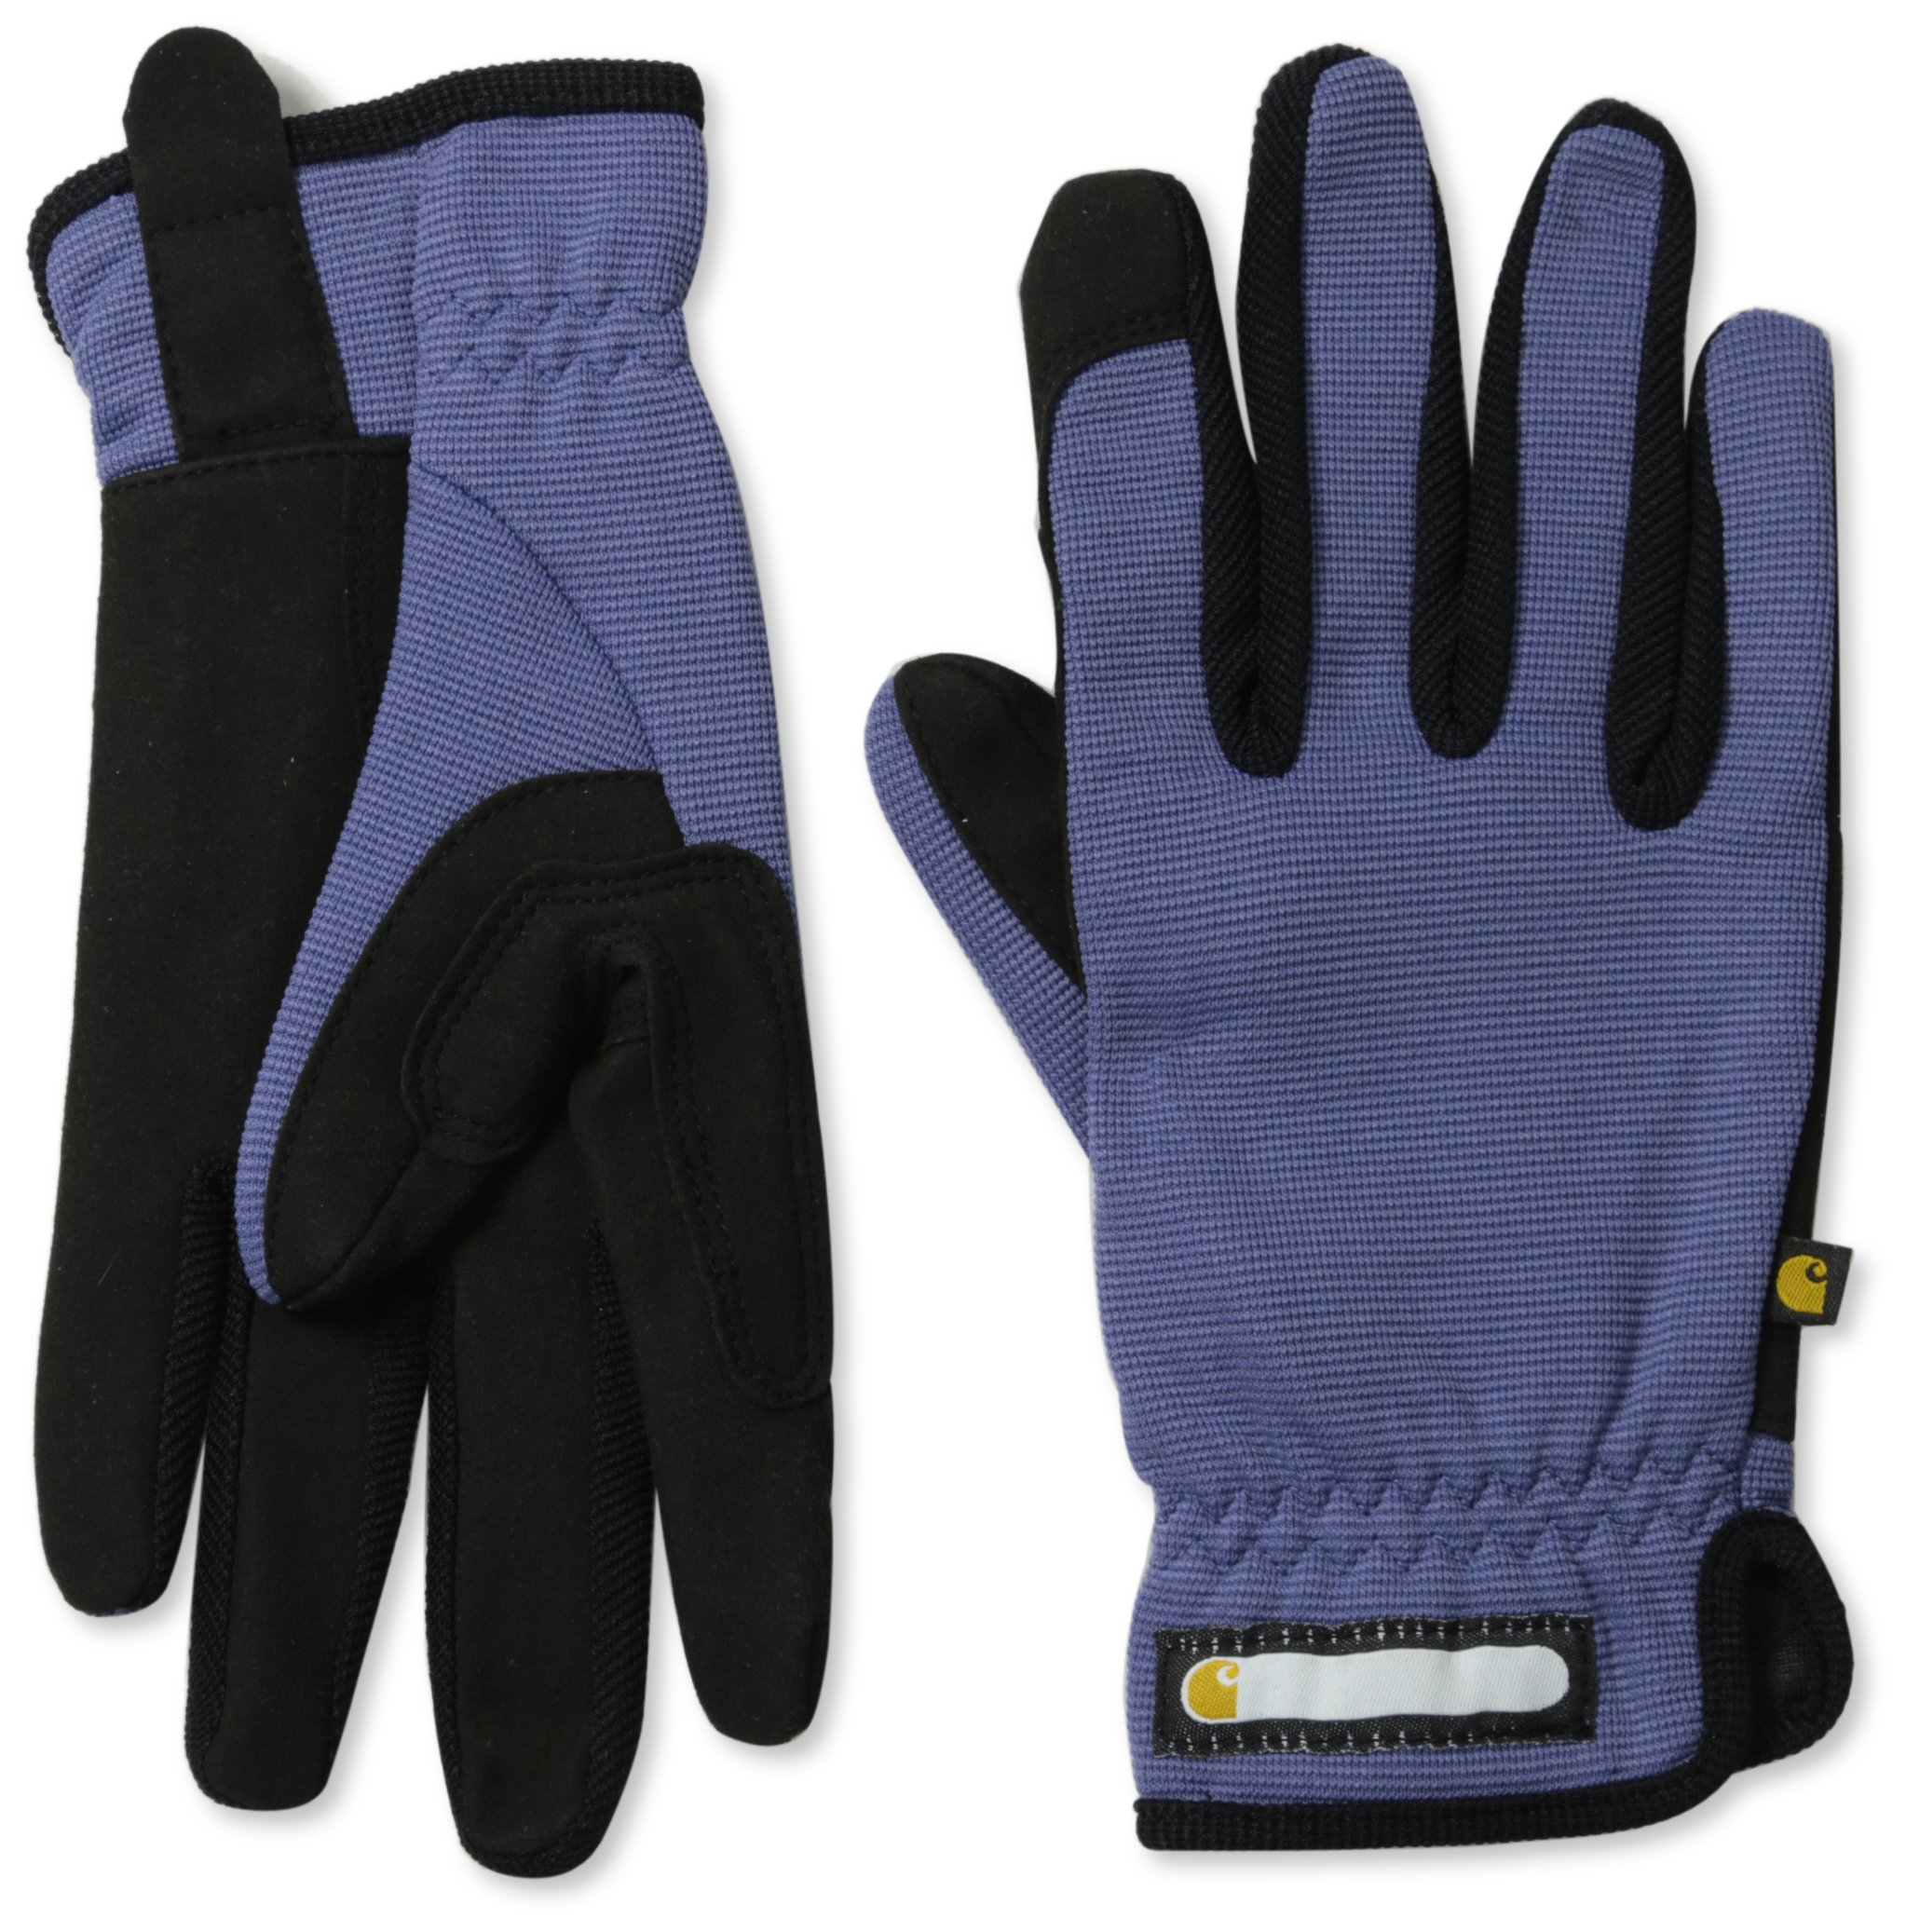 Carhartt Women's Work-Flex Breathable Spandex Work Glove, Blue Dusk Black, Small by Carhartt